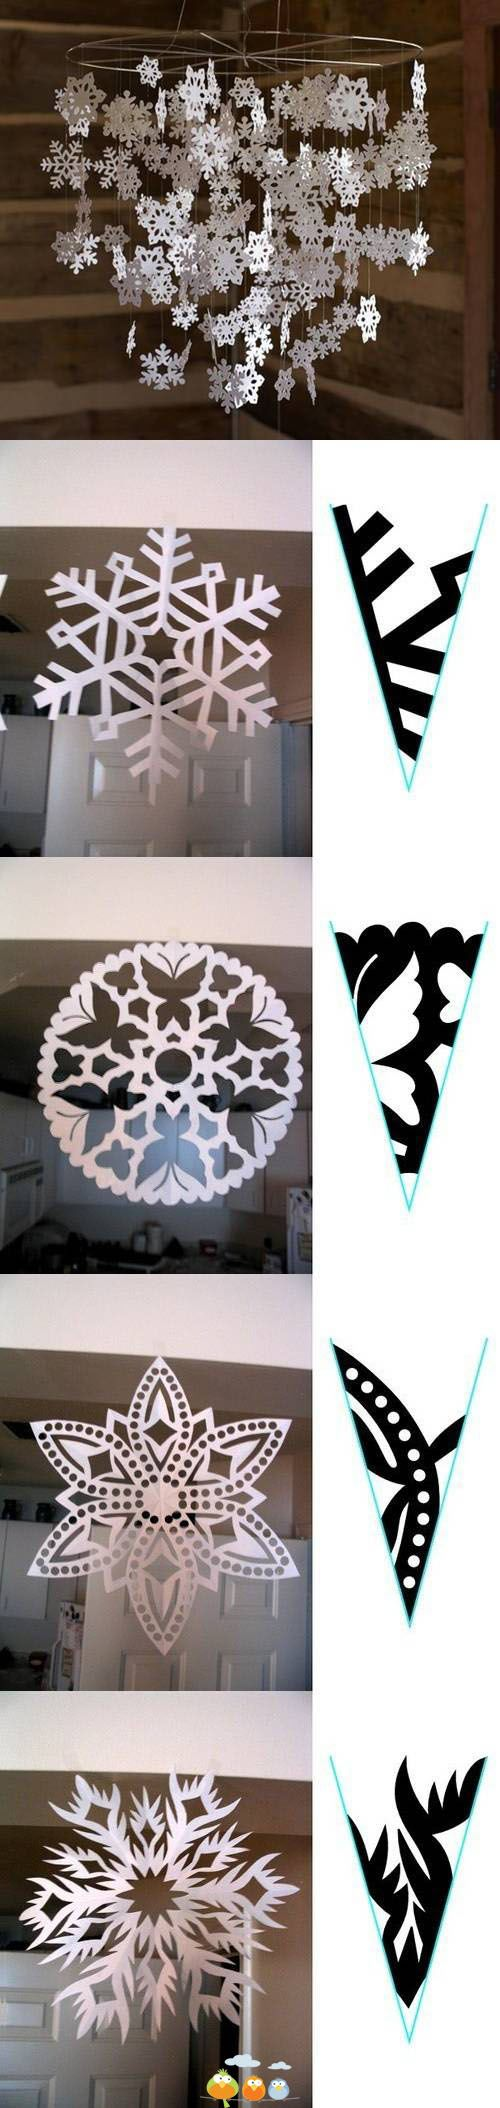 Snow flake tutorials! Some of these are amazing!